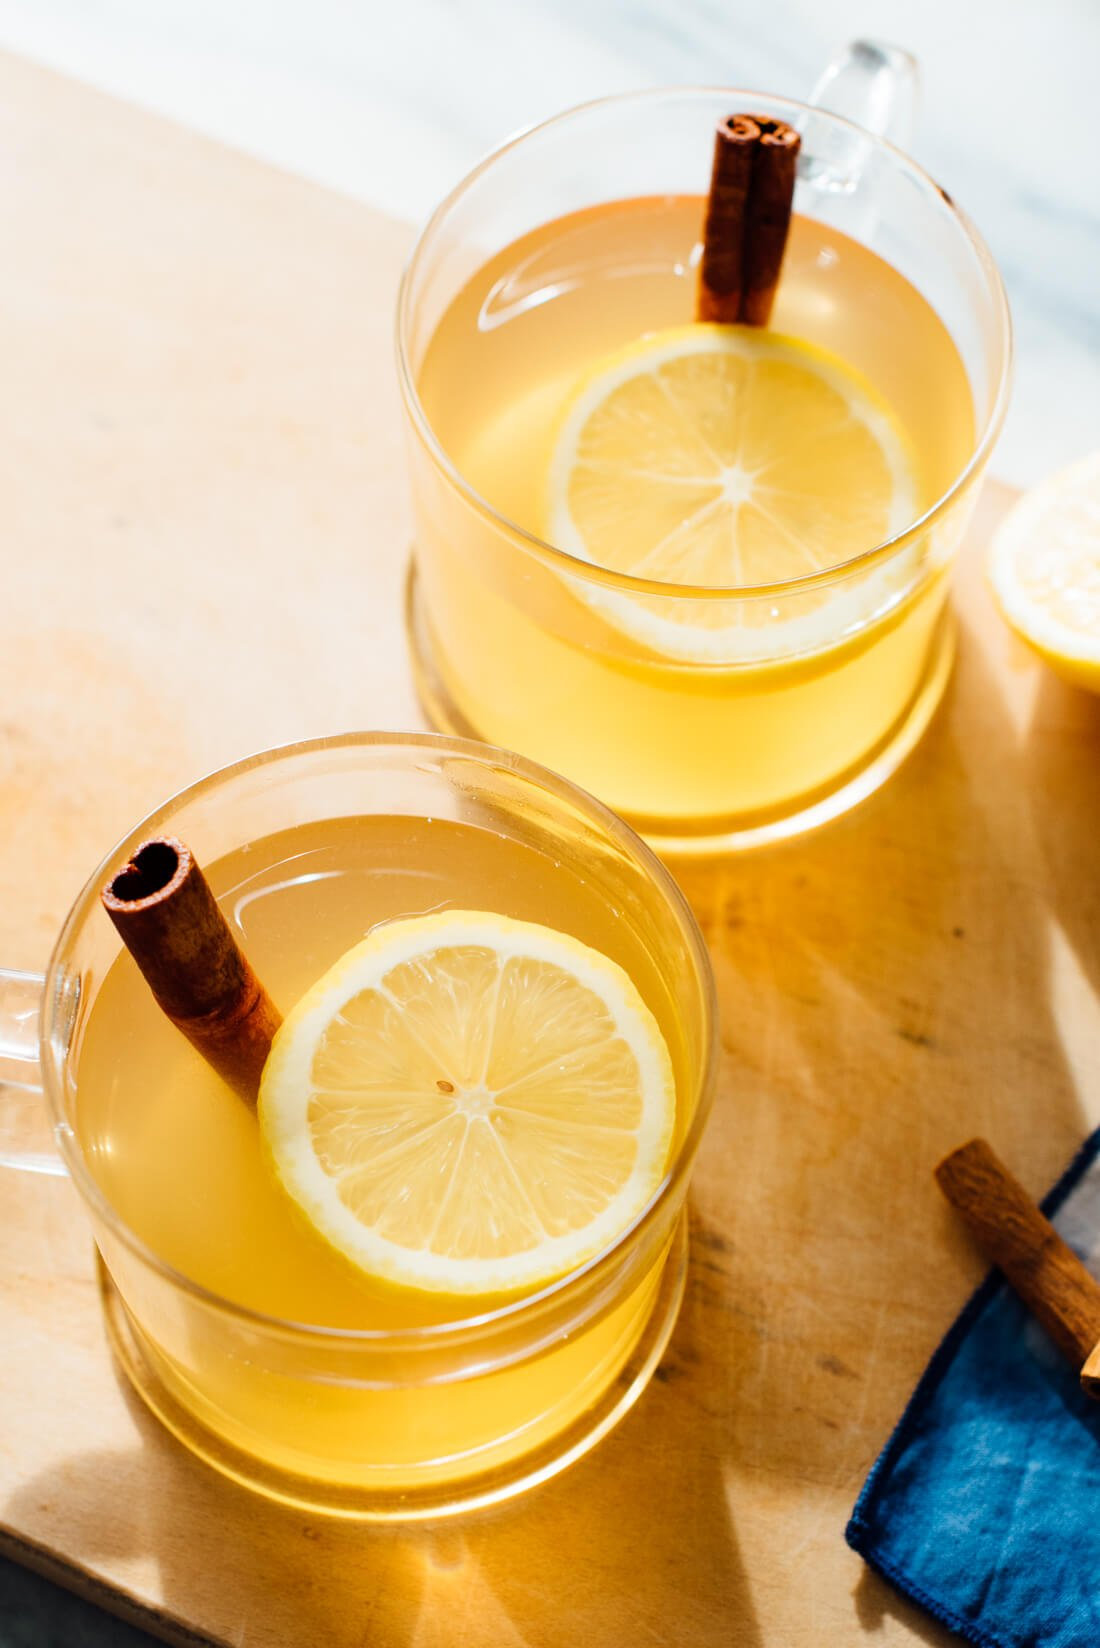 hot toddy recipe close-up